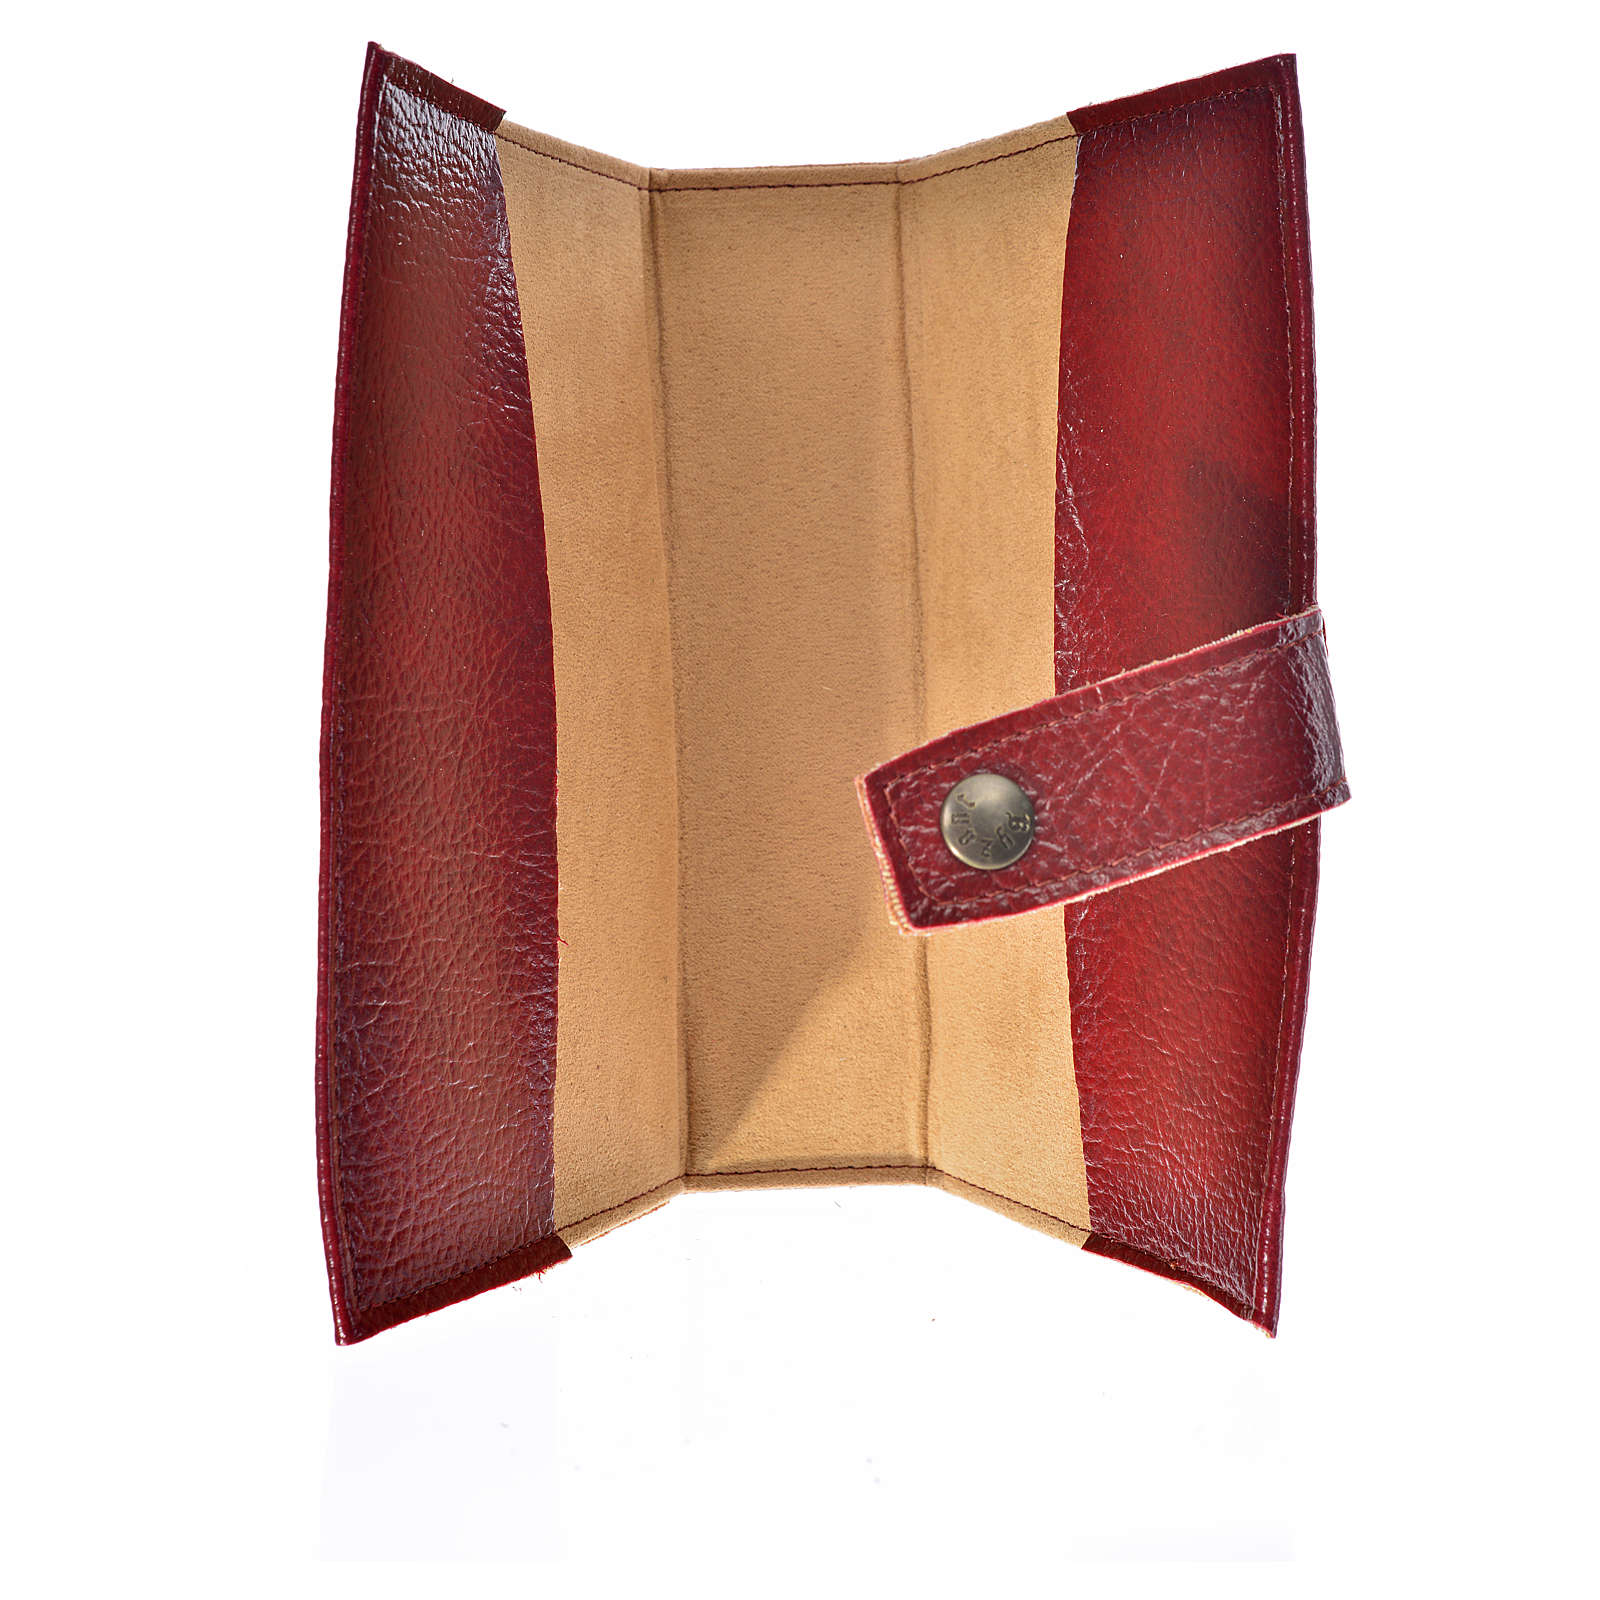 Ordinary time III cover in burgundy leather imitation with Our Lady image 4